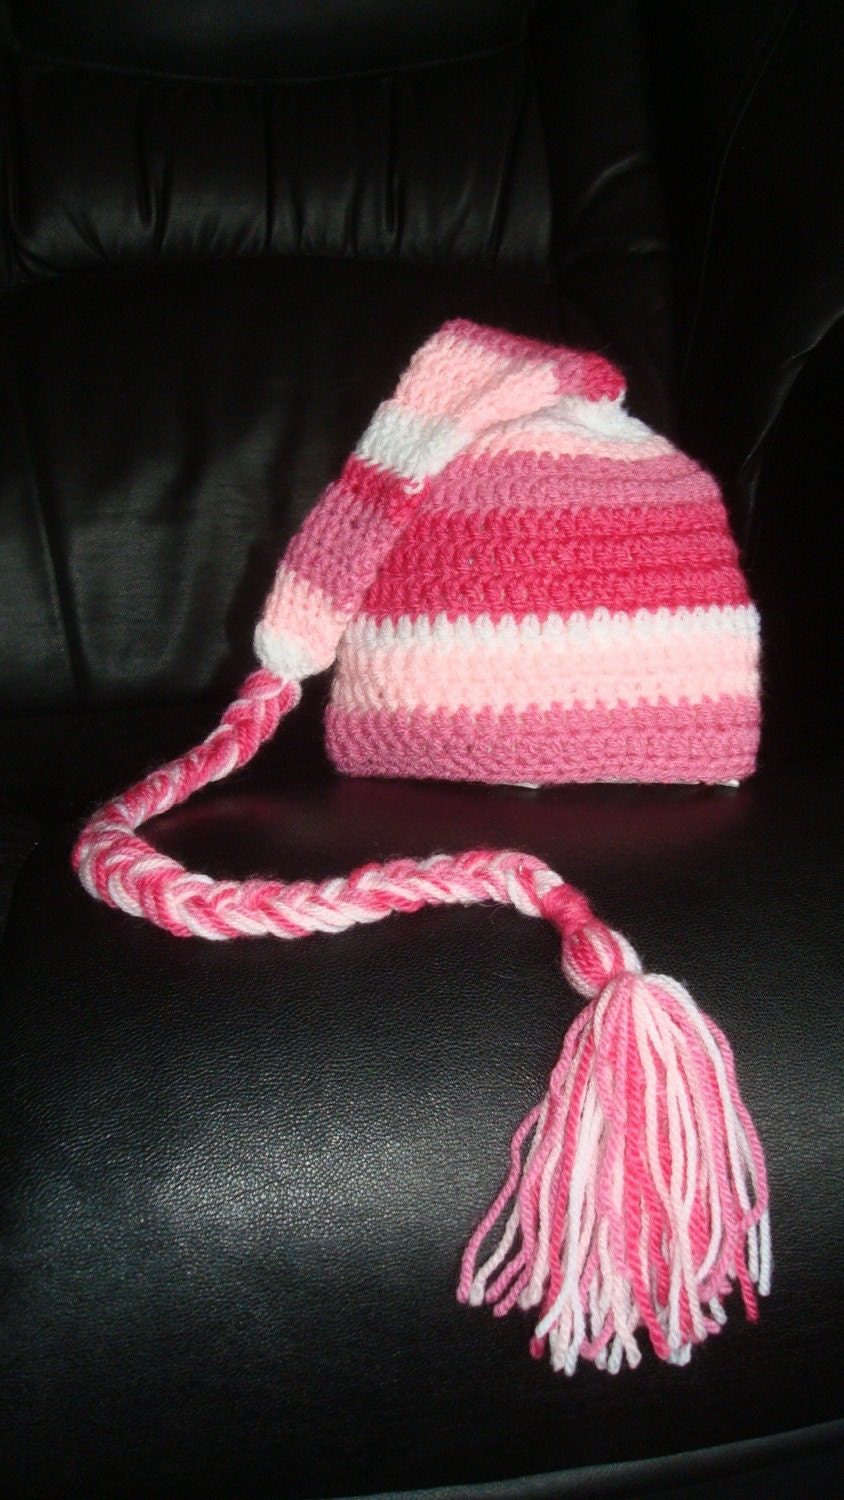 Cute sriped Elf hat. 0-12 month.Great for a newborn photo prop or for a gift. Item 032 Berry sorbet